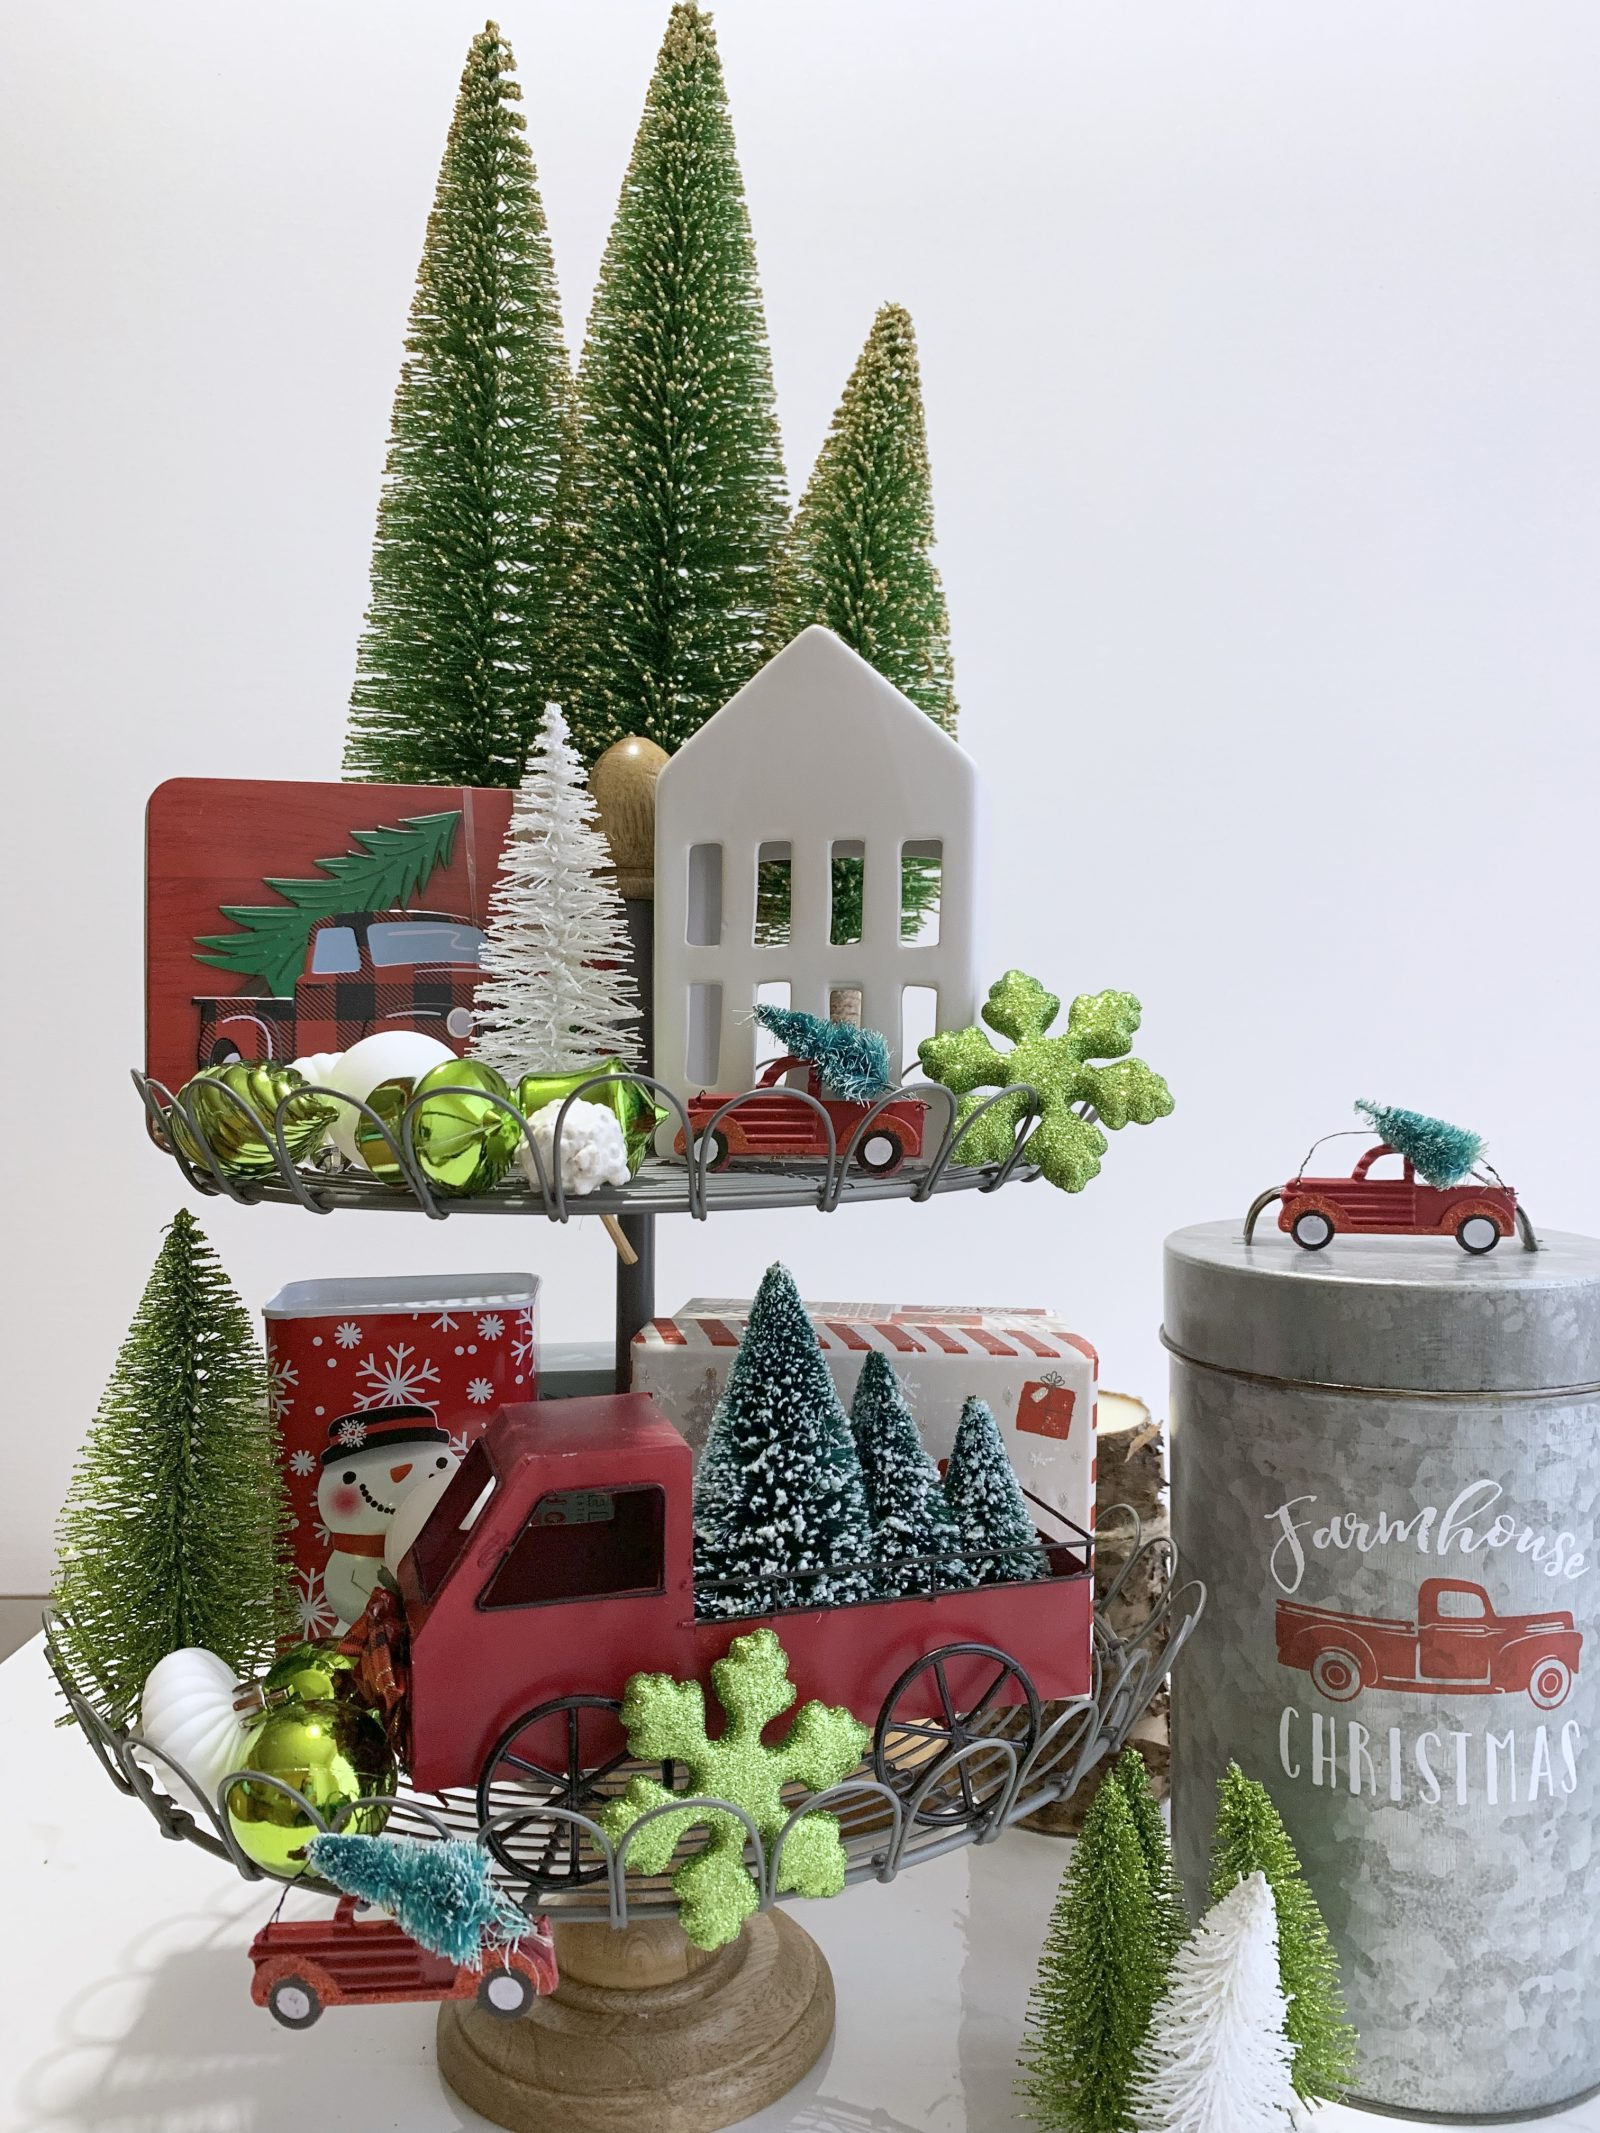 How to Style Your Tiered Stand for Christmas The Return Home With The Family Christmas Tree #Farmhouse #Affordable #BudgetFriendly #Christmas #DIY #ChristmasDecor #FarmhouseDecor